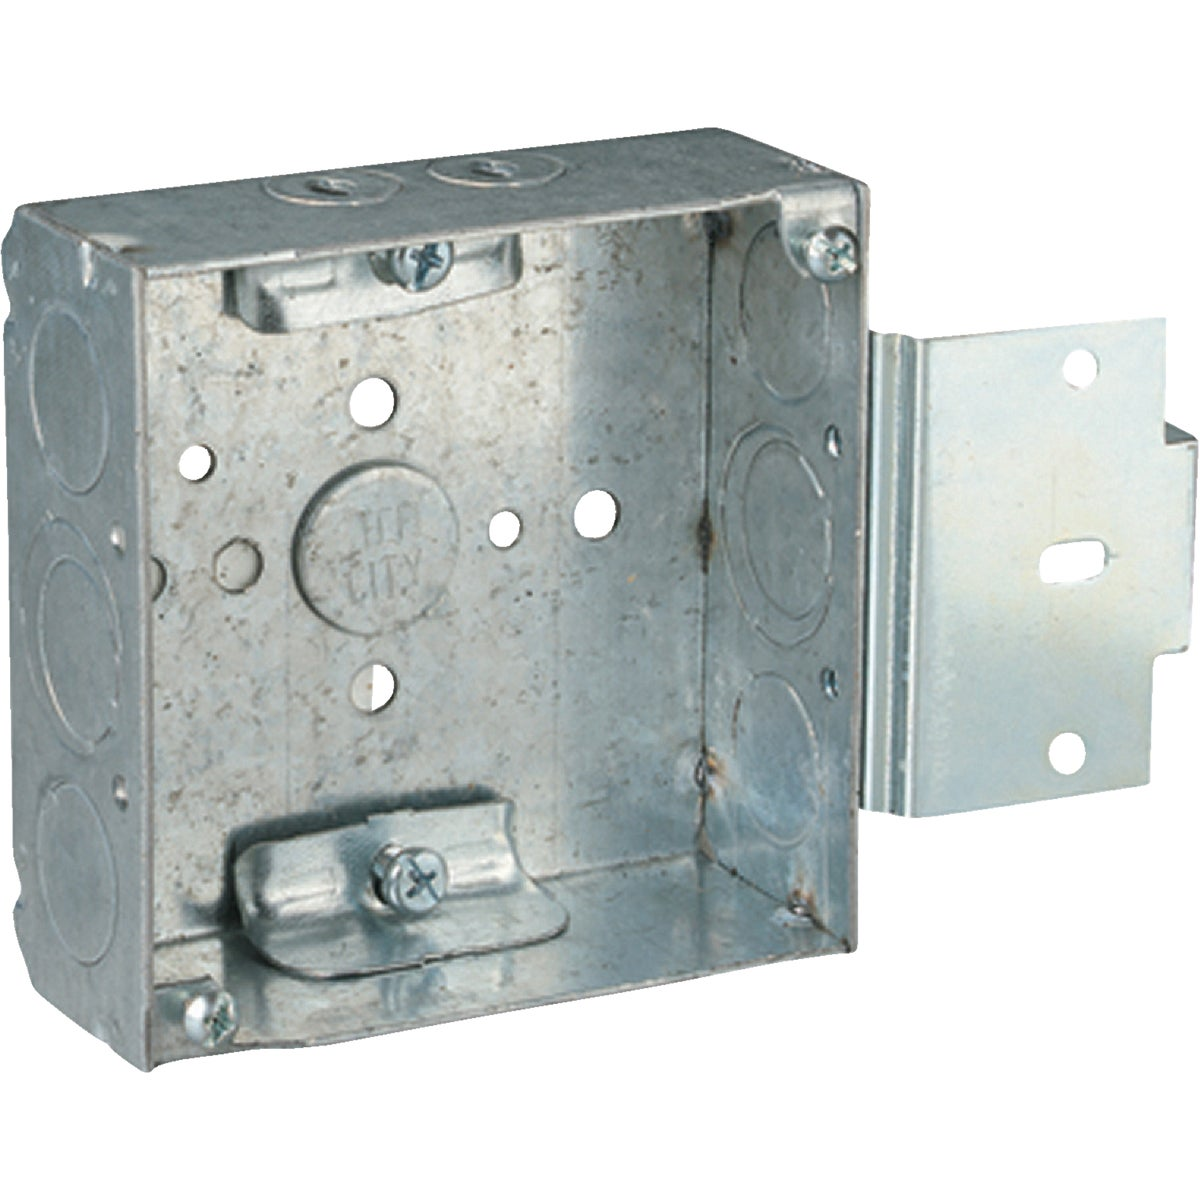 4X4X1-1/2 SWITCH BOX - 52151MSN by Thomas & Betts